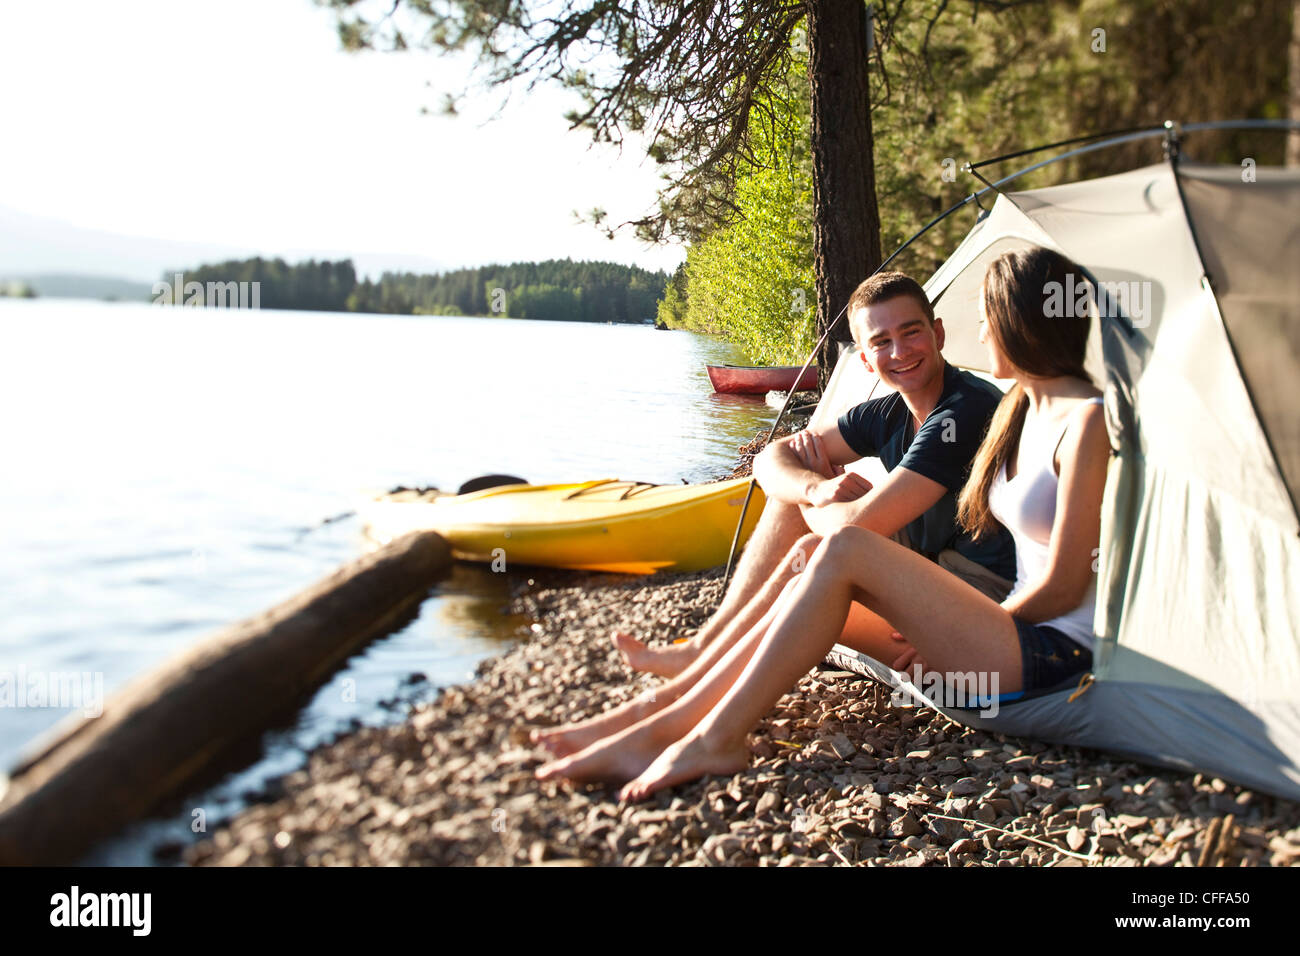 Two young adults laugh and smile on a camping and kayaking trip in Idaho. Stock Photo